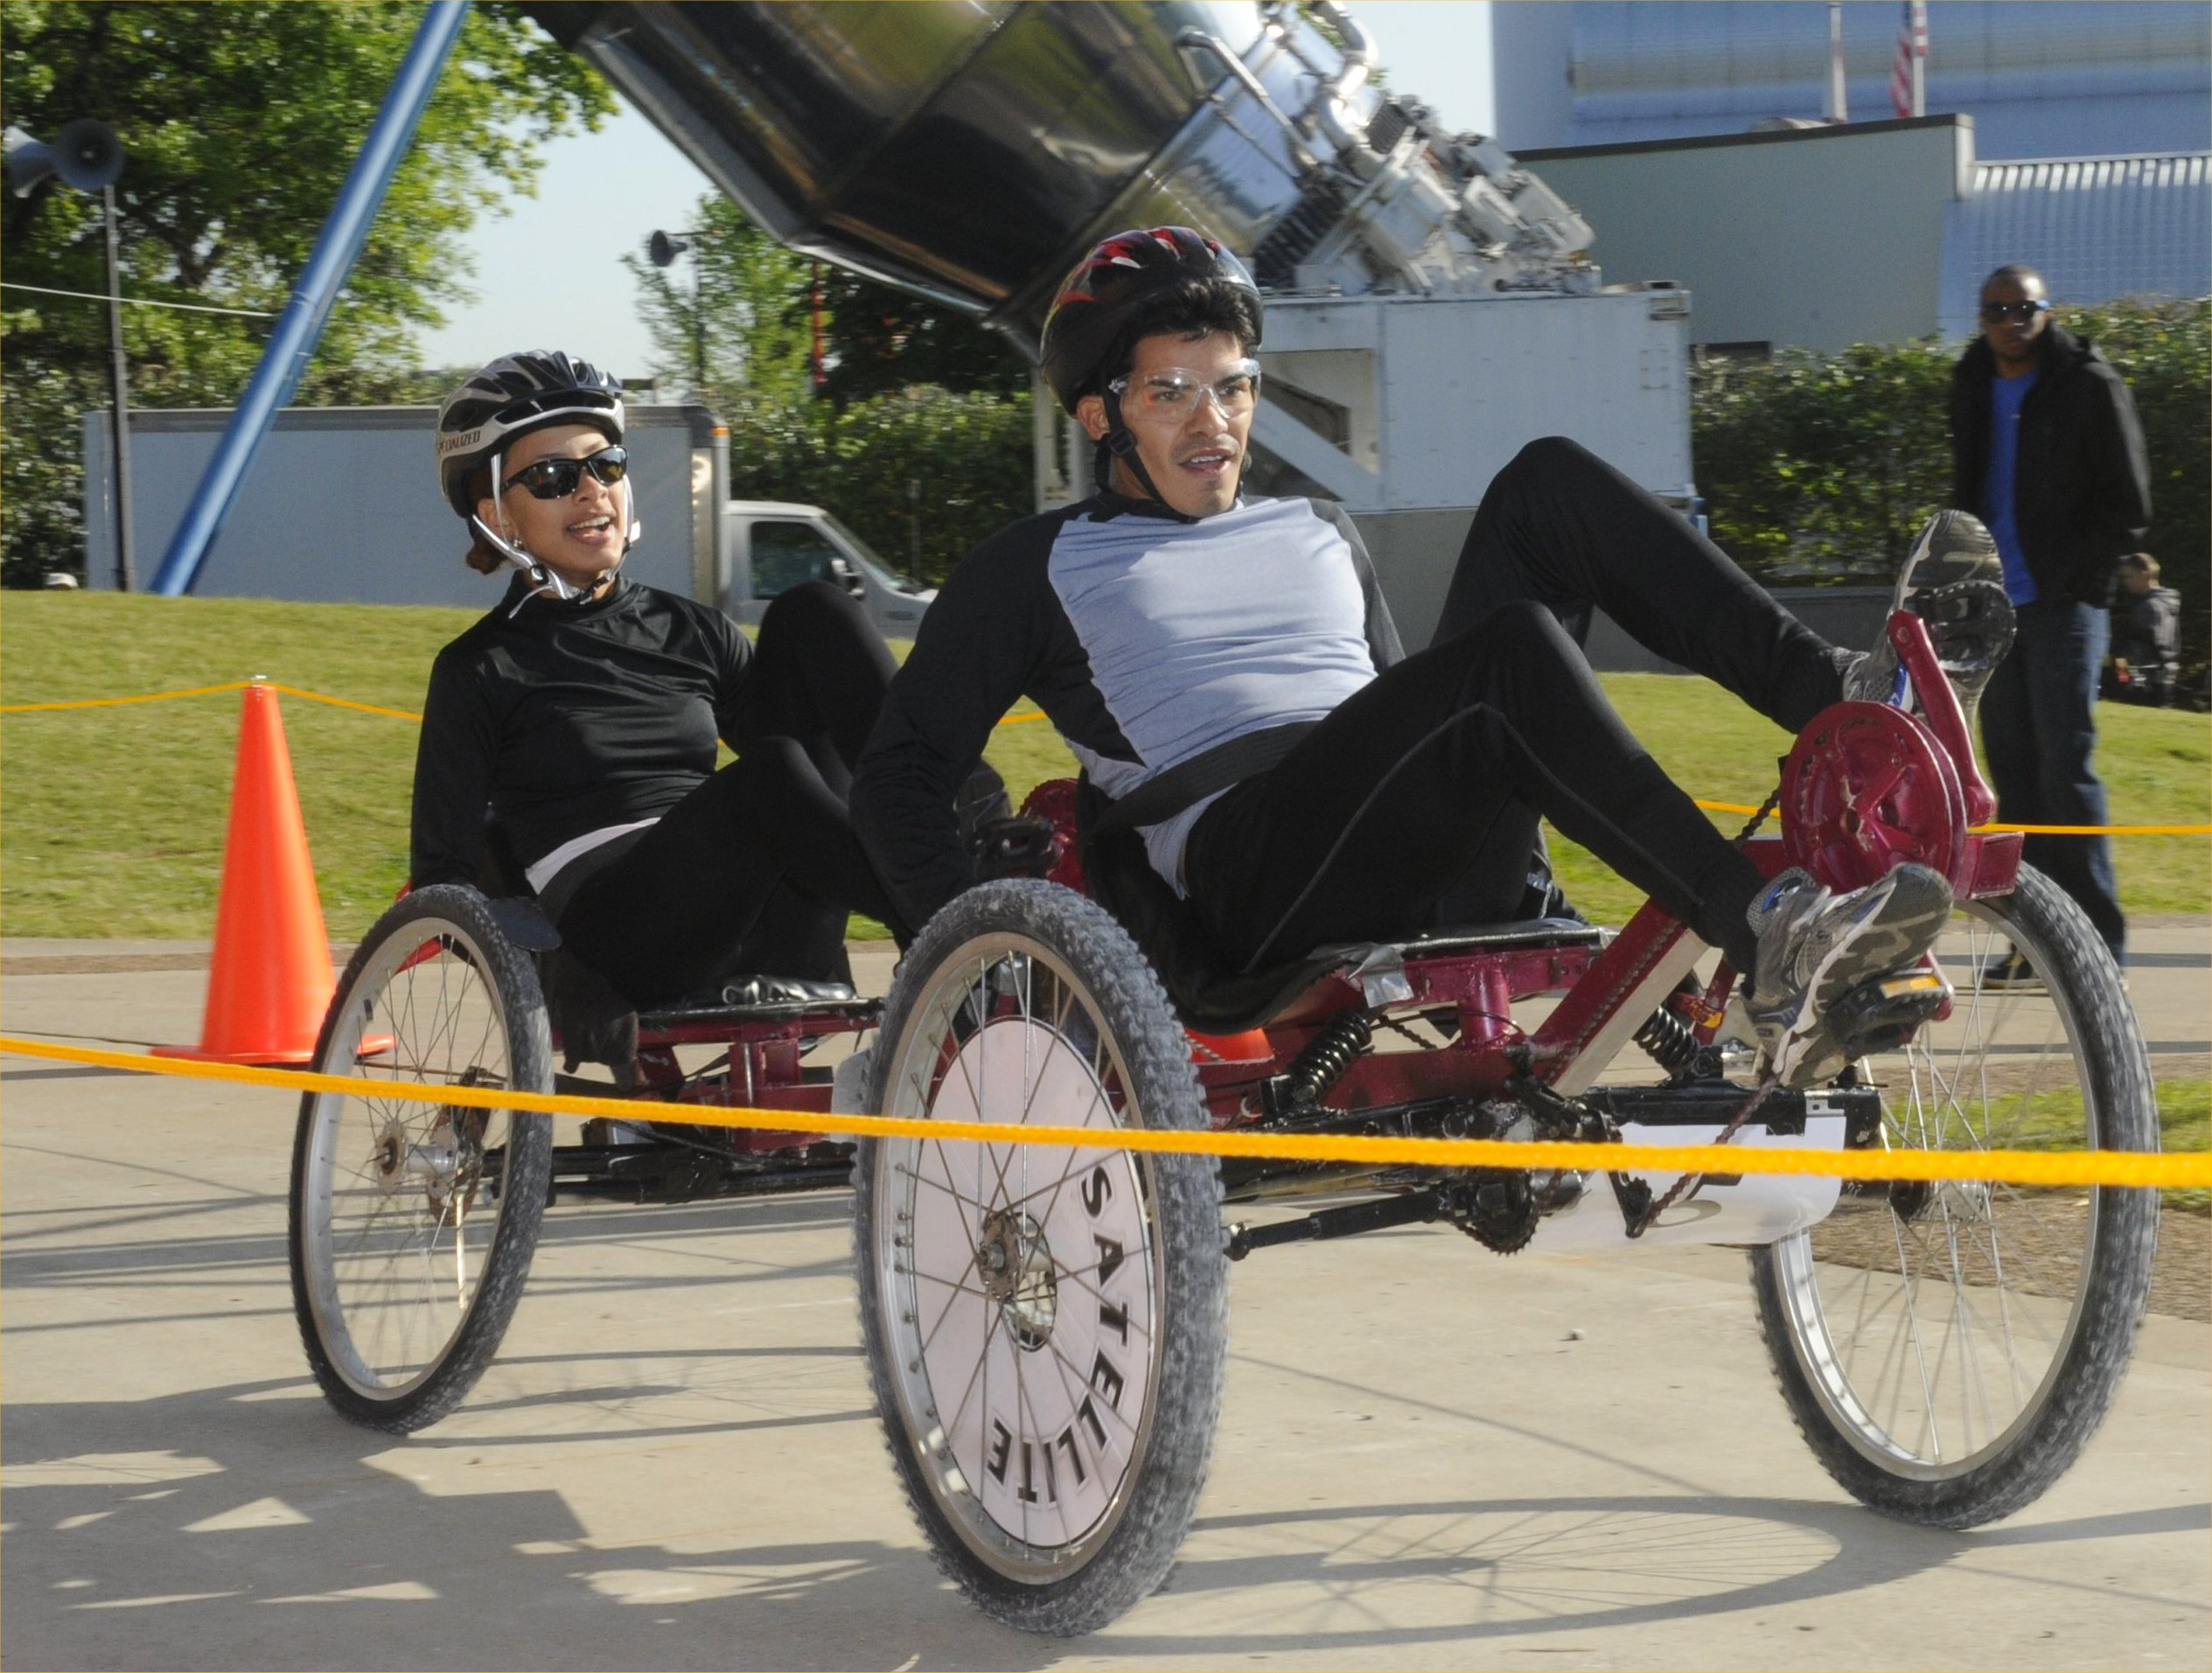 The University of Puerto Rico at Humacao won second place in the college division of the 19th Annual NASA Great Moonbuggy Race, finishing the course with a time of 4 minutes and 12 seconds. Credit: NASA/MSFC/Emmett Given